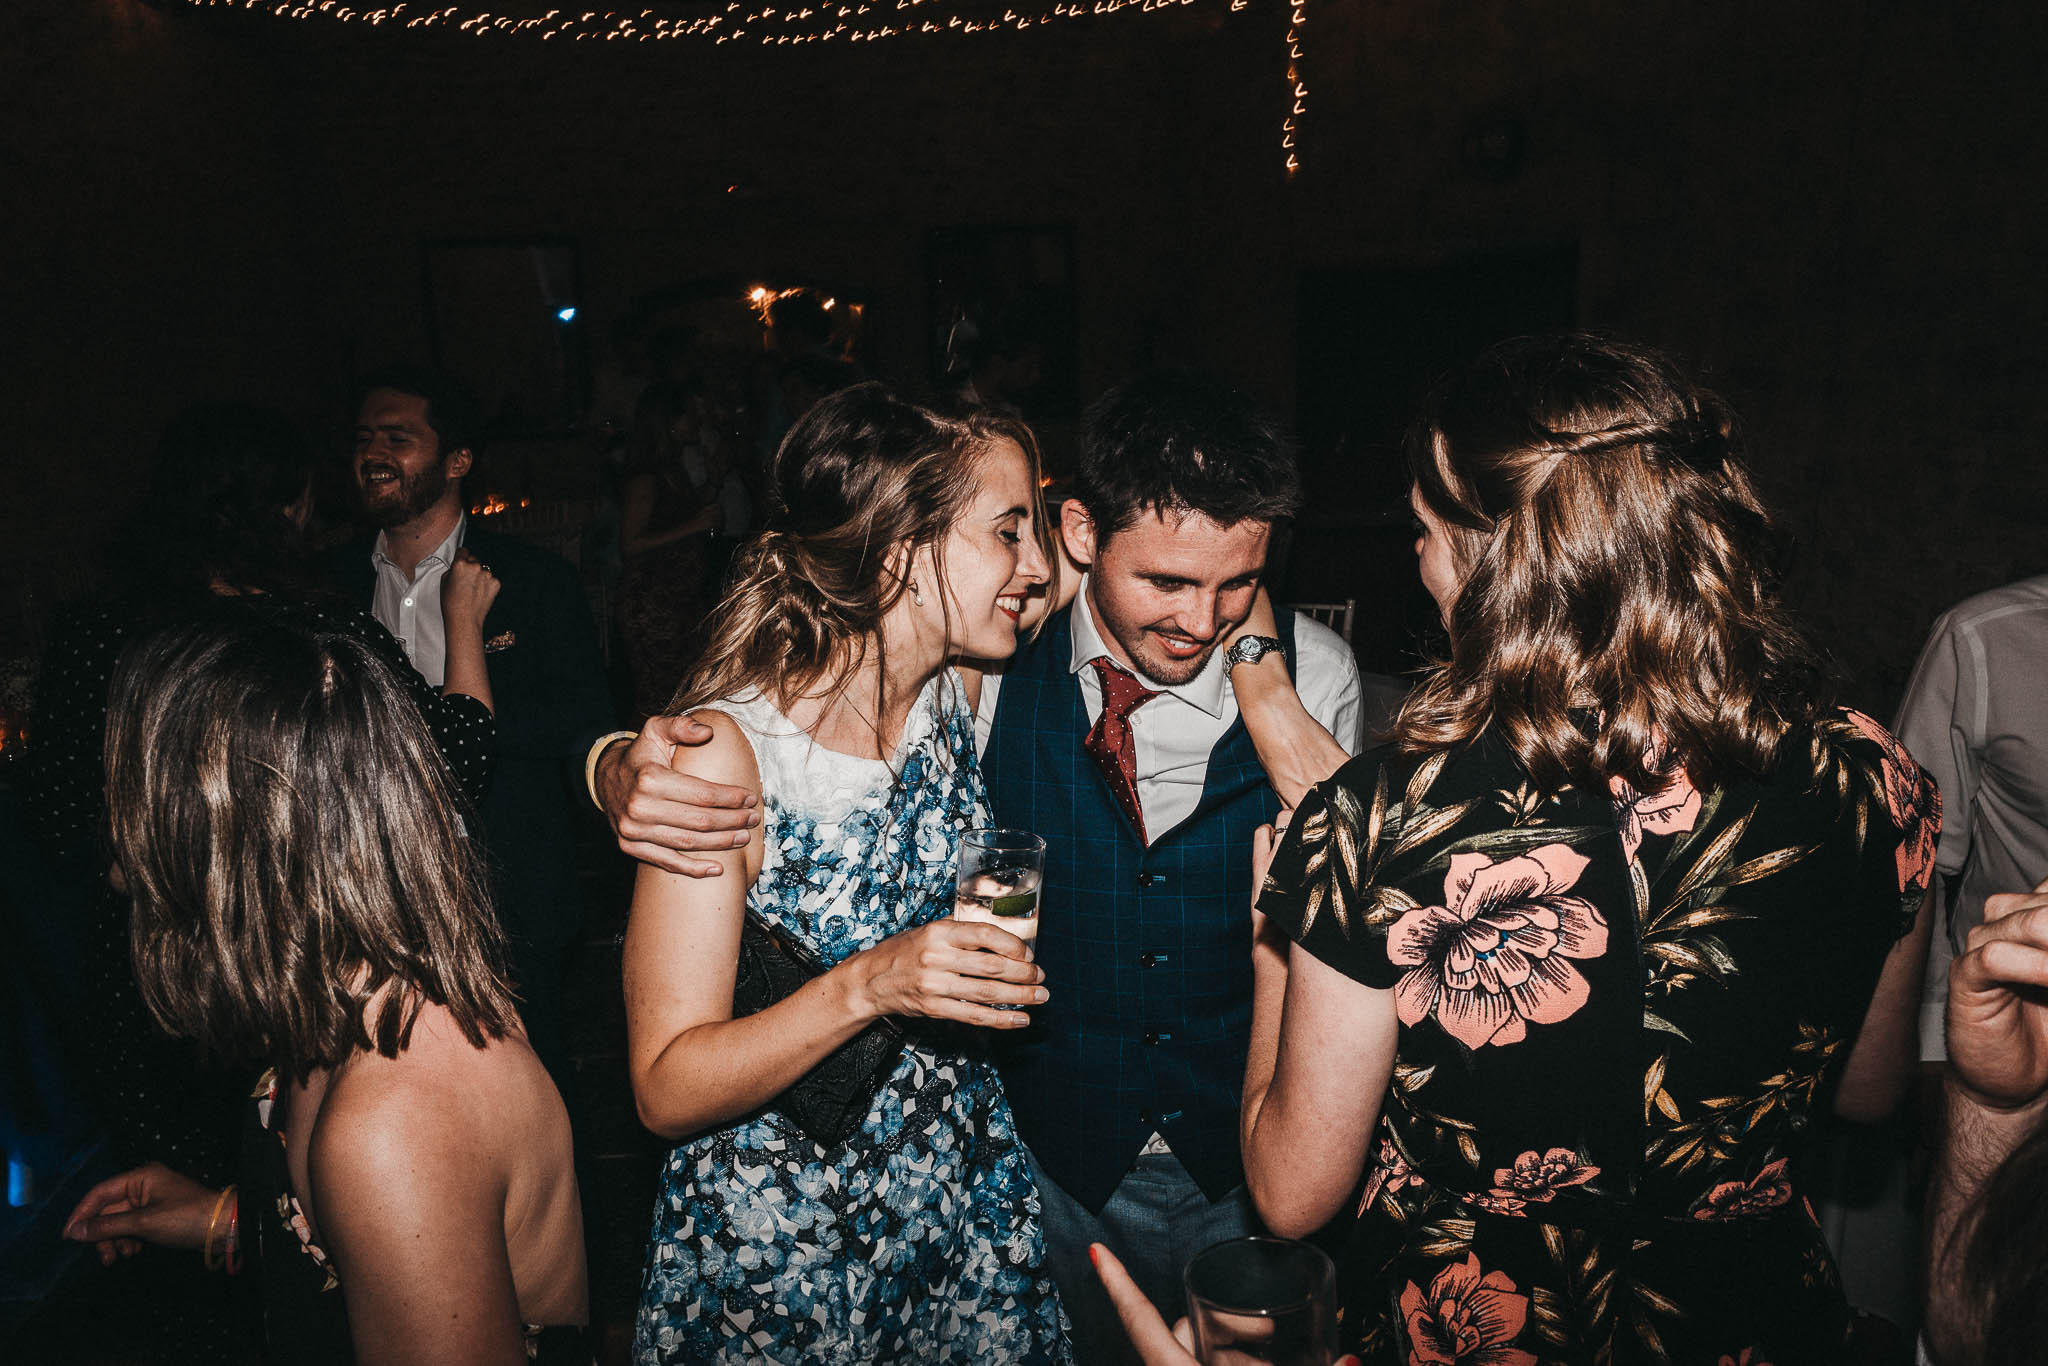 fun portraits on dance floor